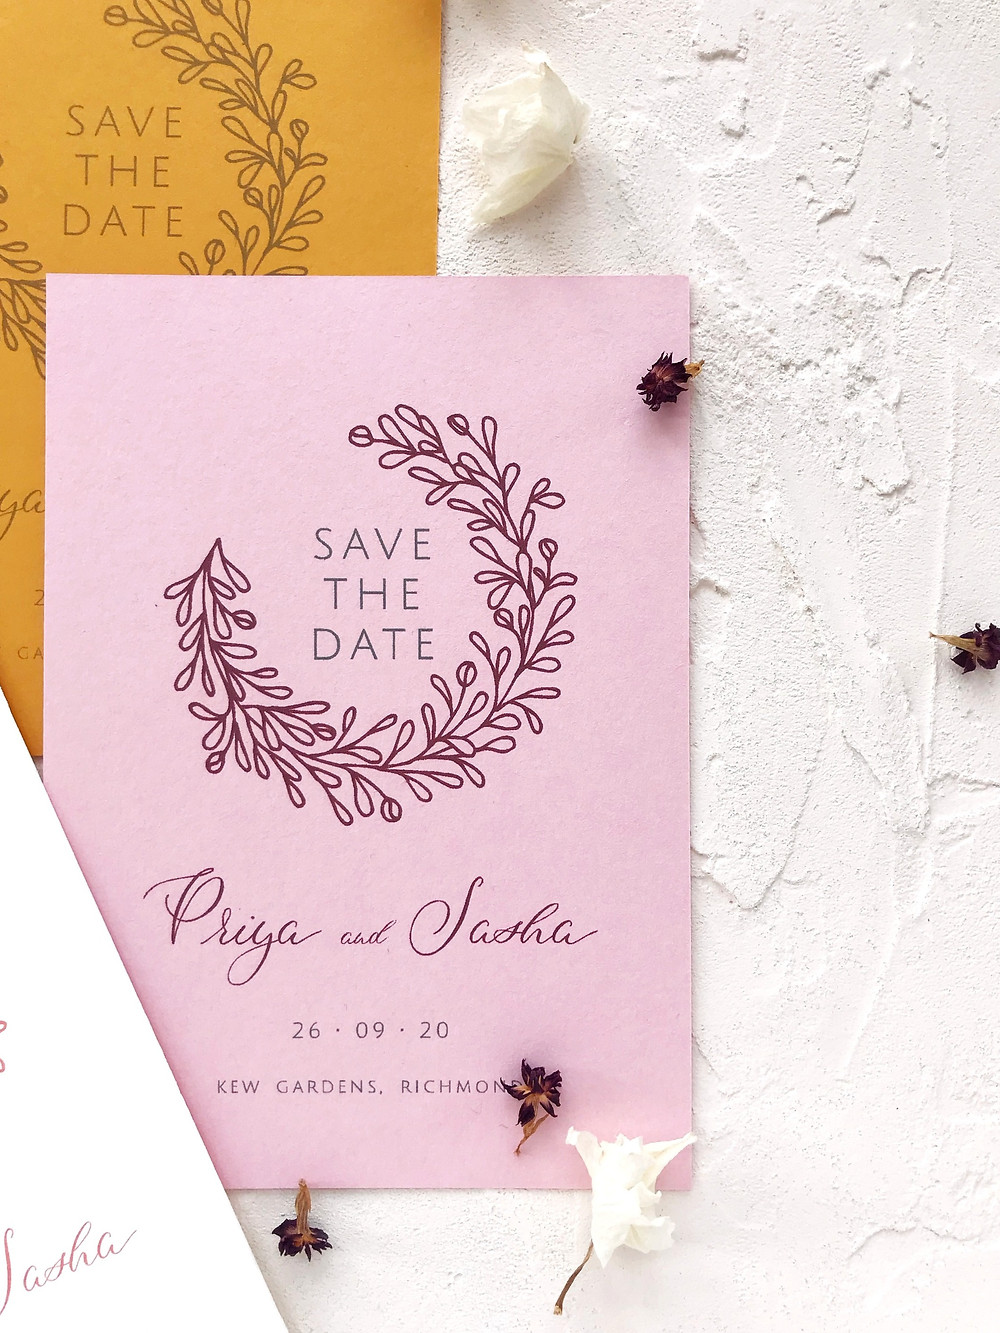 Save the Date card - Modern mustard and pink wedding stationery with an illustrated wreath and the names in calligraphy